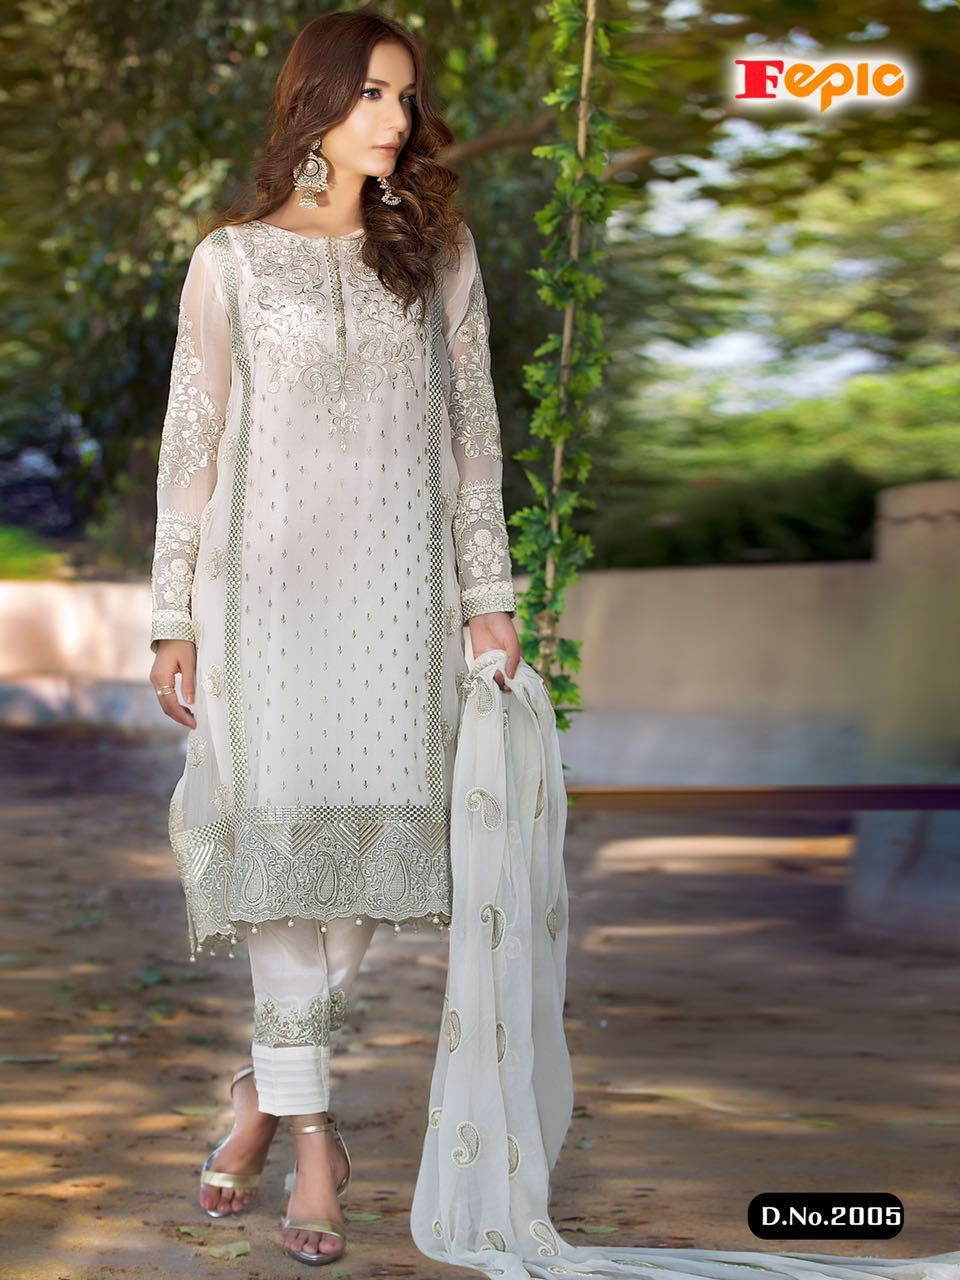 47b0da4d91 Buy Latest & Beautiful Collection Of Salwar Kameez. From Party Wear Suits  to Casual Shalwar Kameez in Attractive Colors, Prints, Cuts And Style.